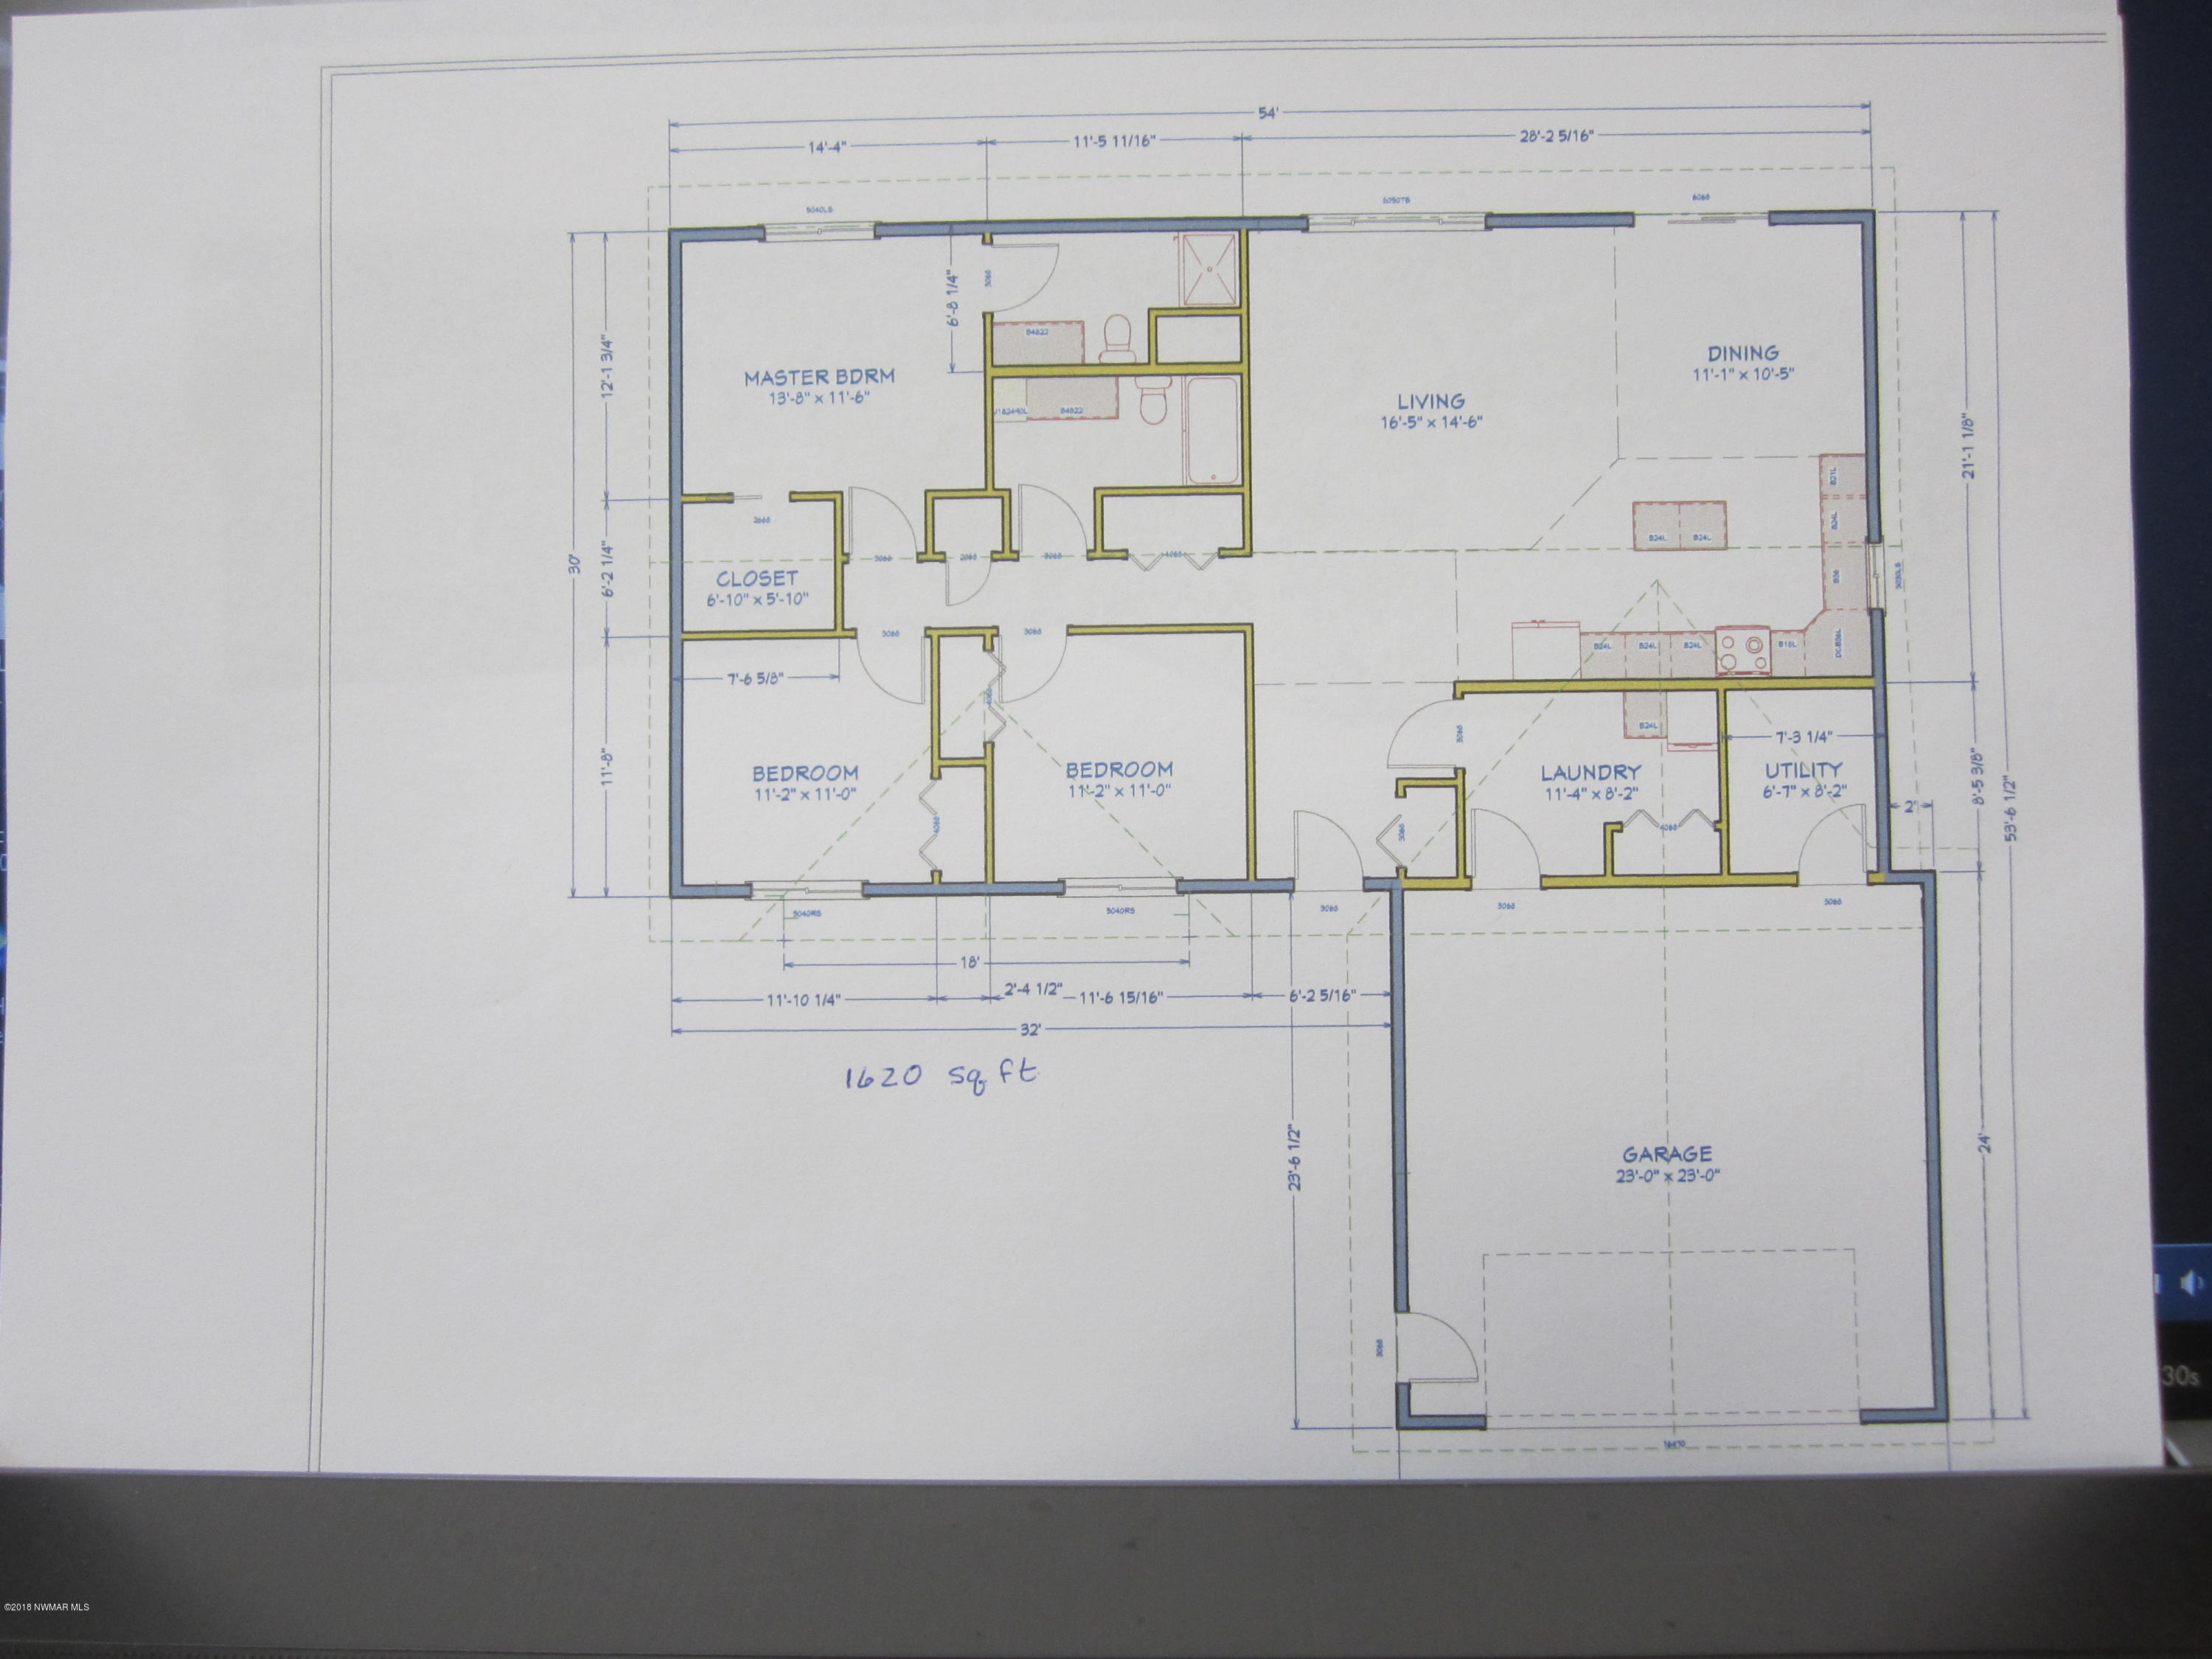 1620 Sq. Ft. plus attached garage. All with in-floor heat!